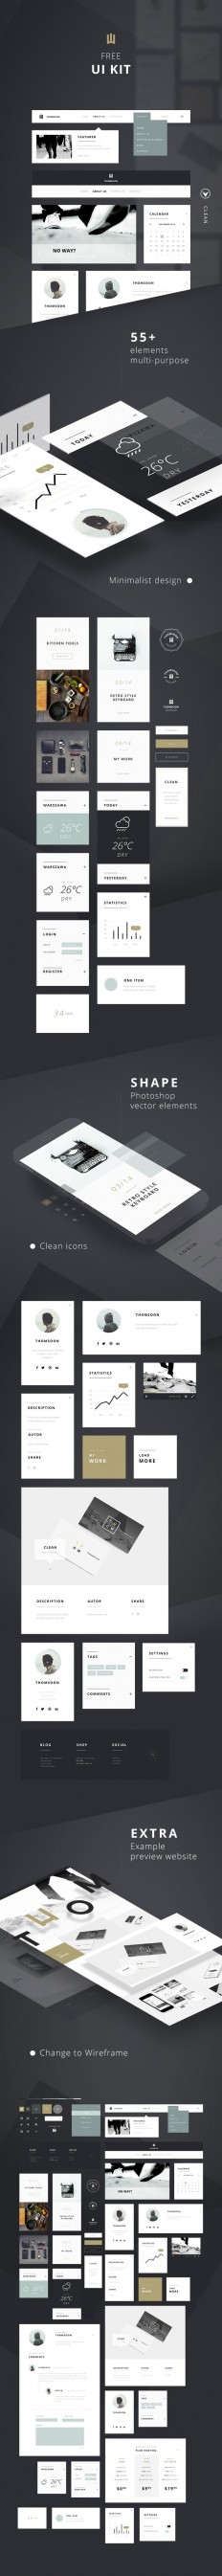 55+ Elements FREE UI KIT | Clean white [DOWNLOAD] on Inspirationde